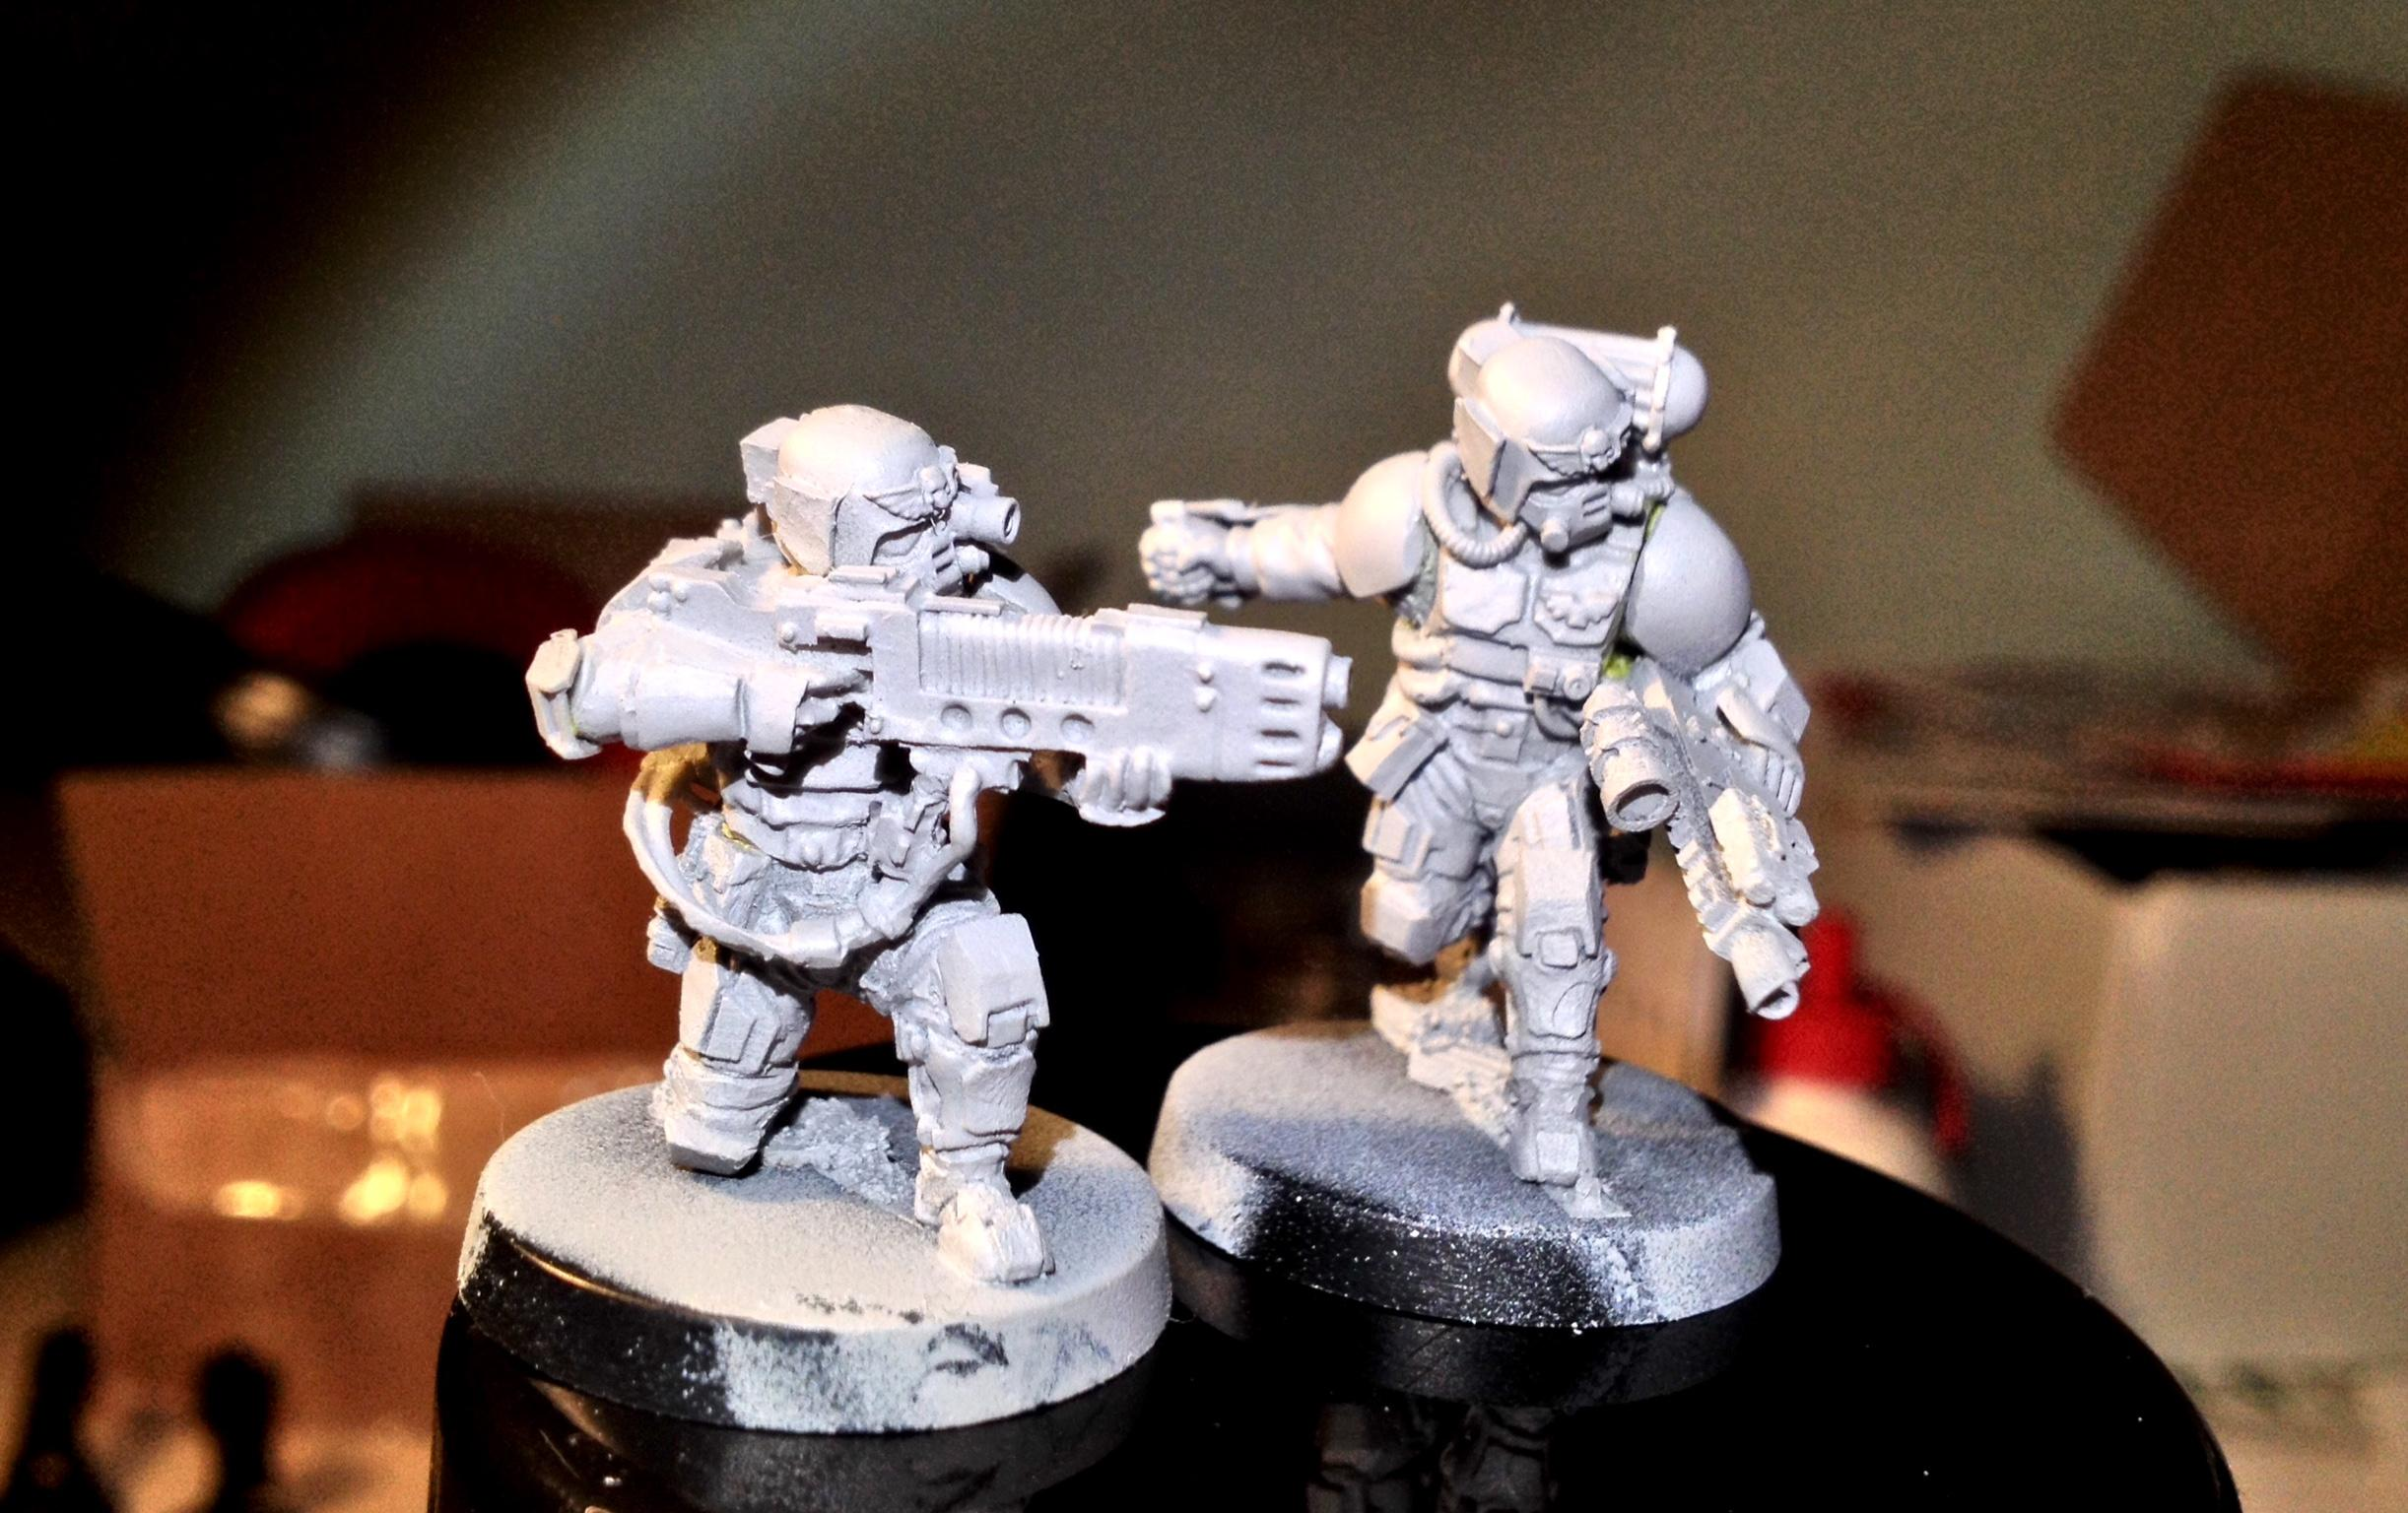 Anvil Industry, Astra Militarum, Cadians, Commando, Conversion, Forge World, Hostile Environment, Imperial Guard, Respirators, Spec Ops, Special Forces, Special Operations, Storm Troopers, Veteran, Warhammer 40,000